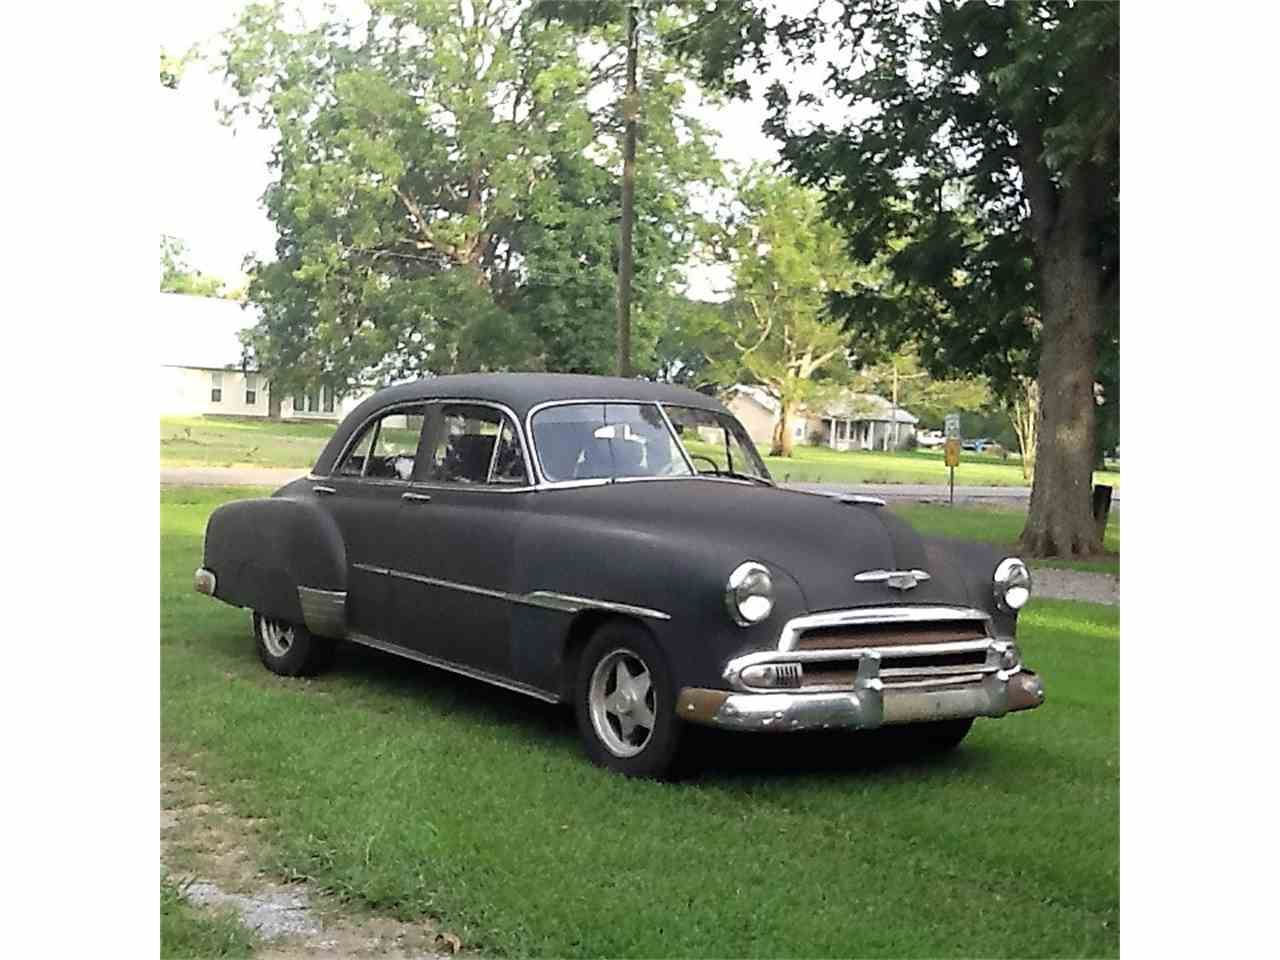 Large Picture of Classic 1951 Chevrolet Styleline Deluxe located in Louisiana - $6,000.00 Offered by a Private Seller - L6J8